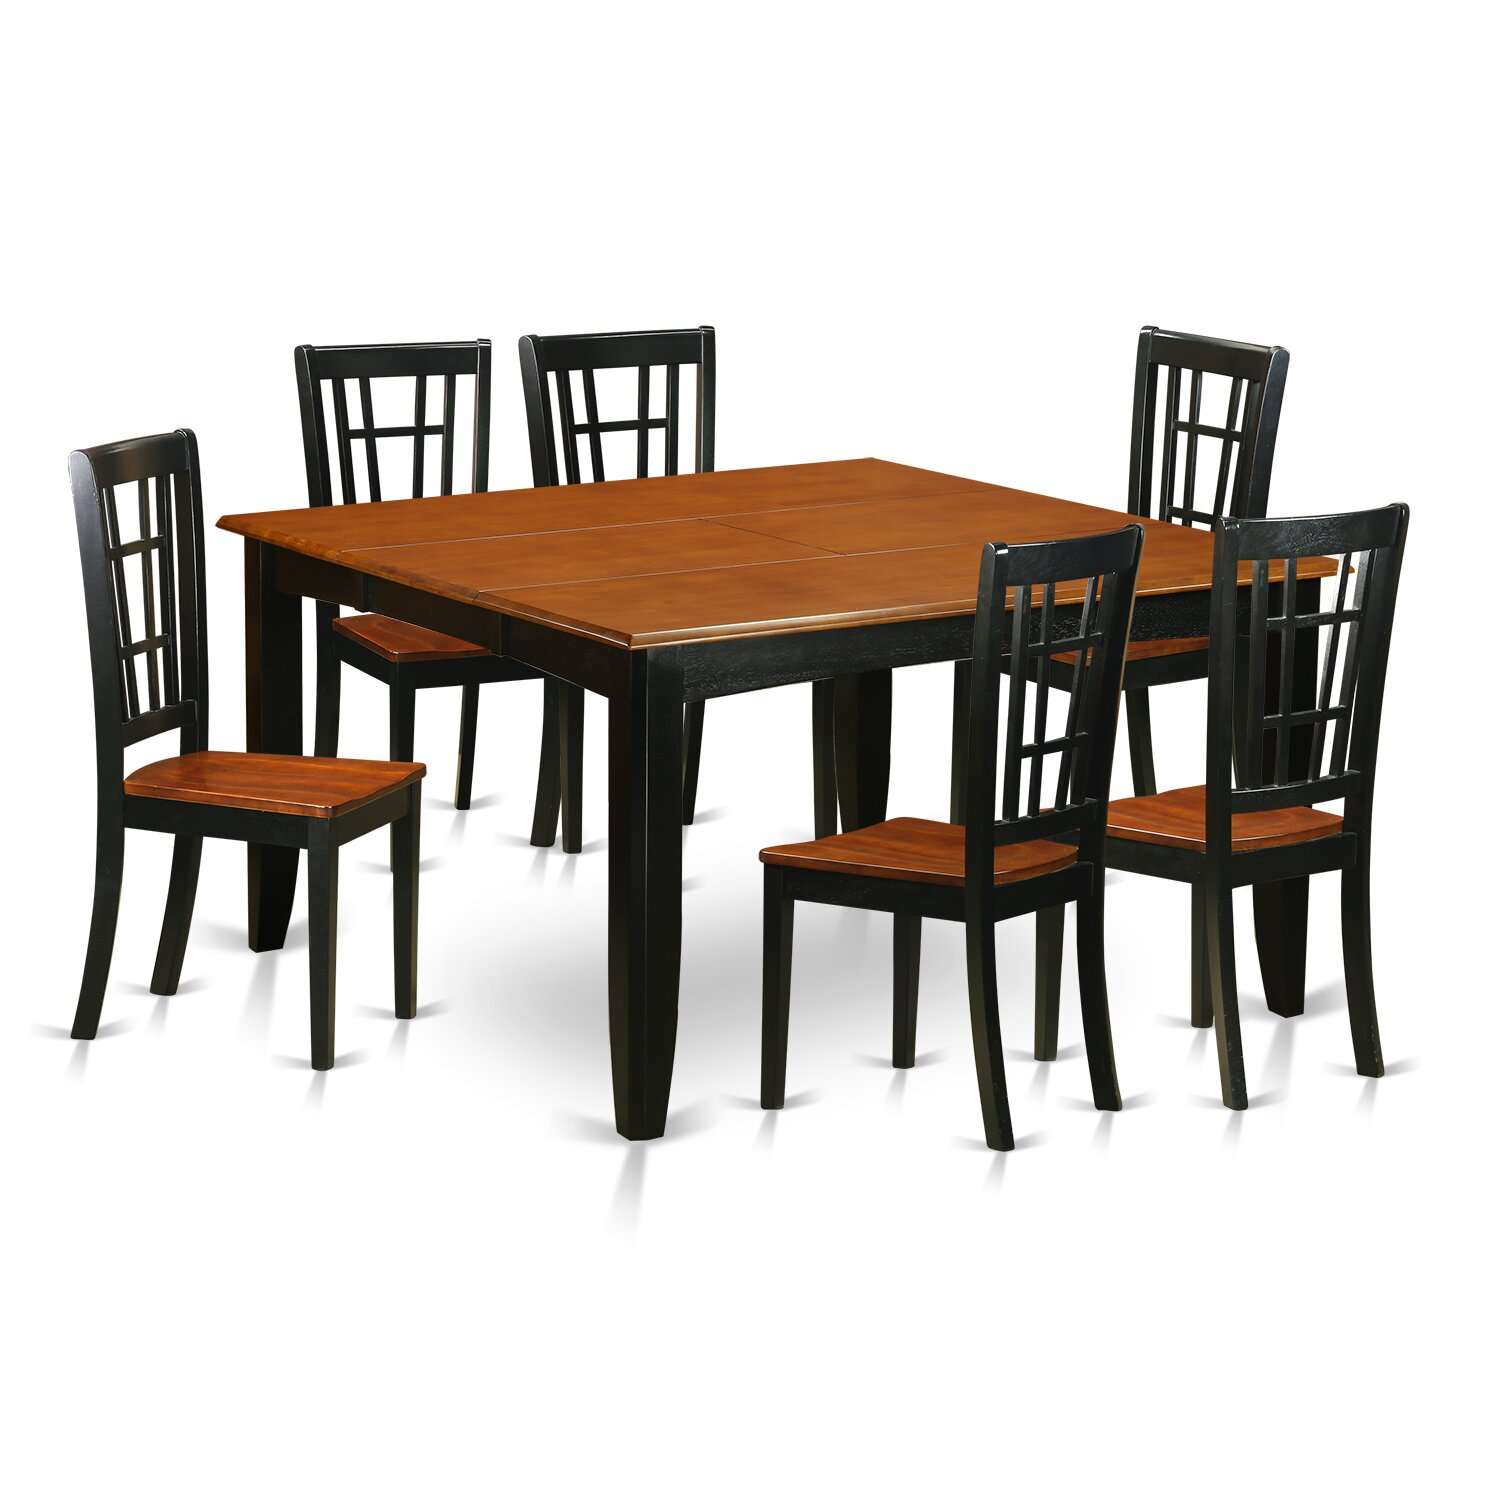 East West Parfait 7 Piece Dining Set